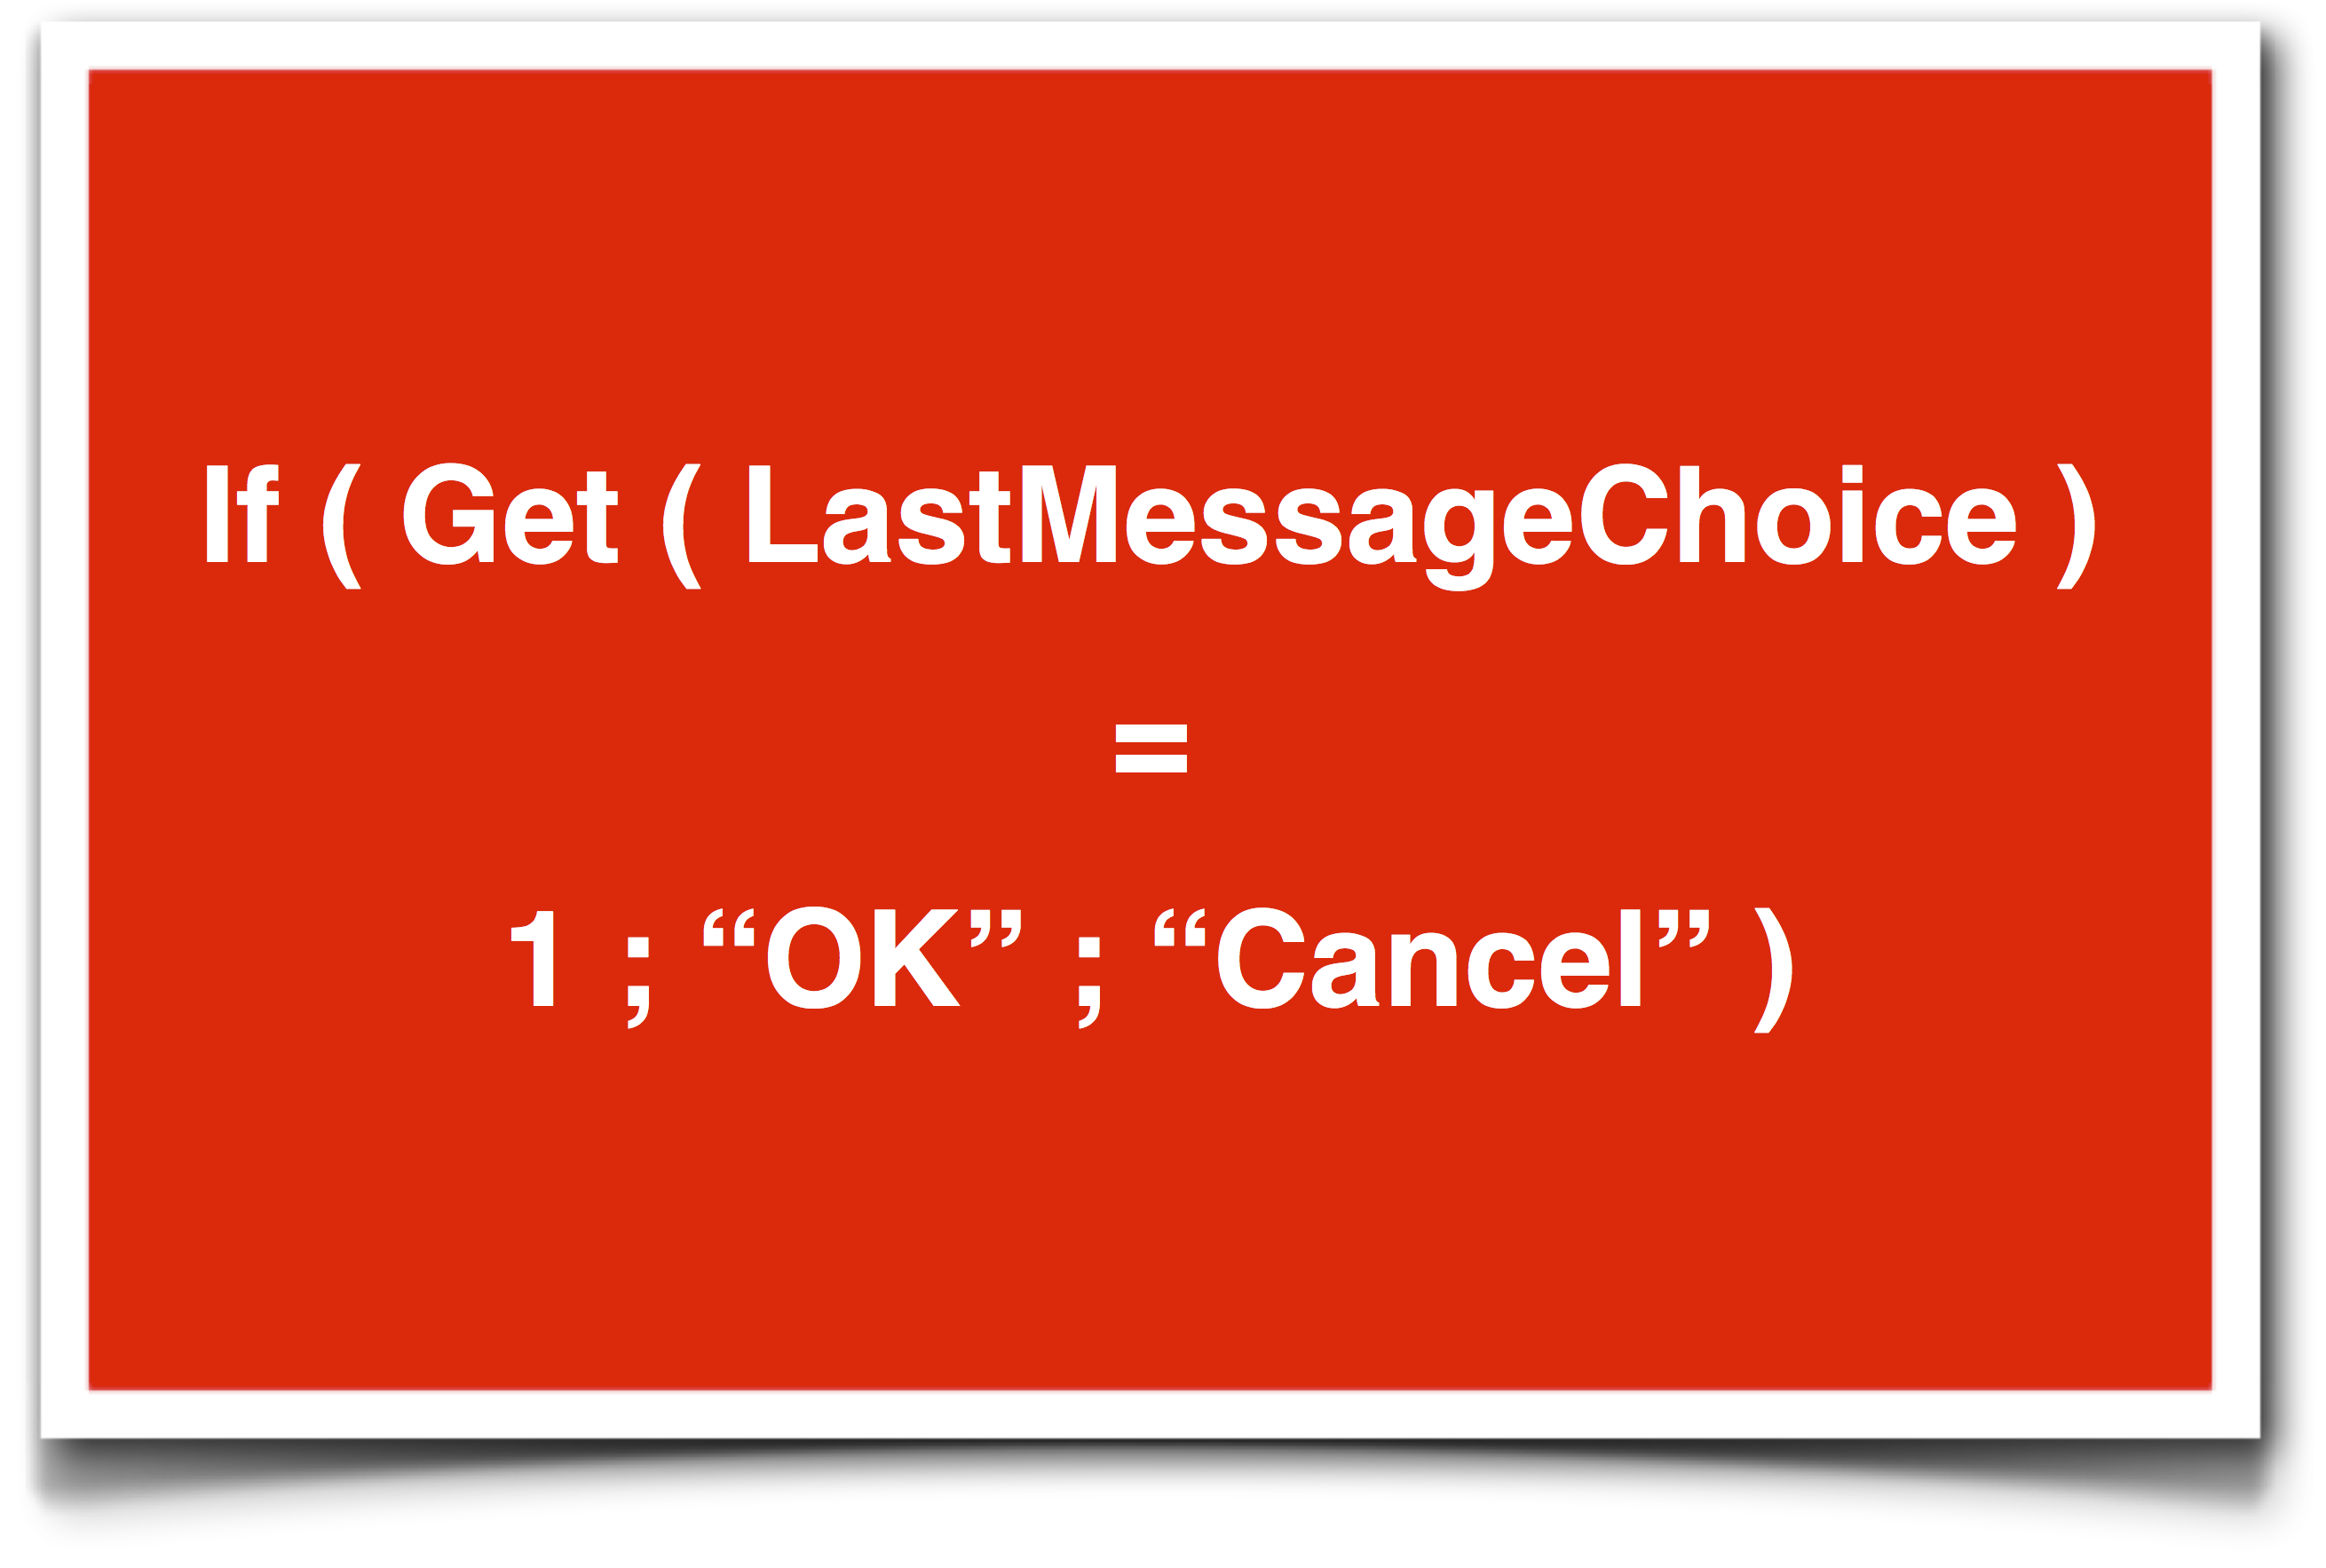 FileMaker's Get ( LastMessageChoice ) function